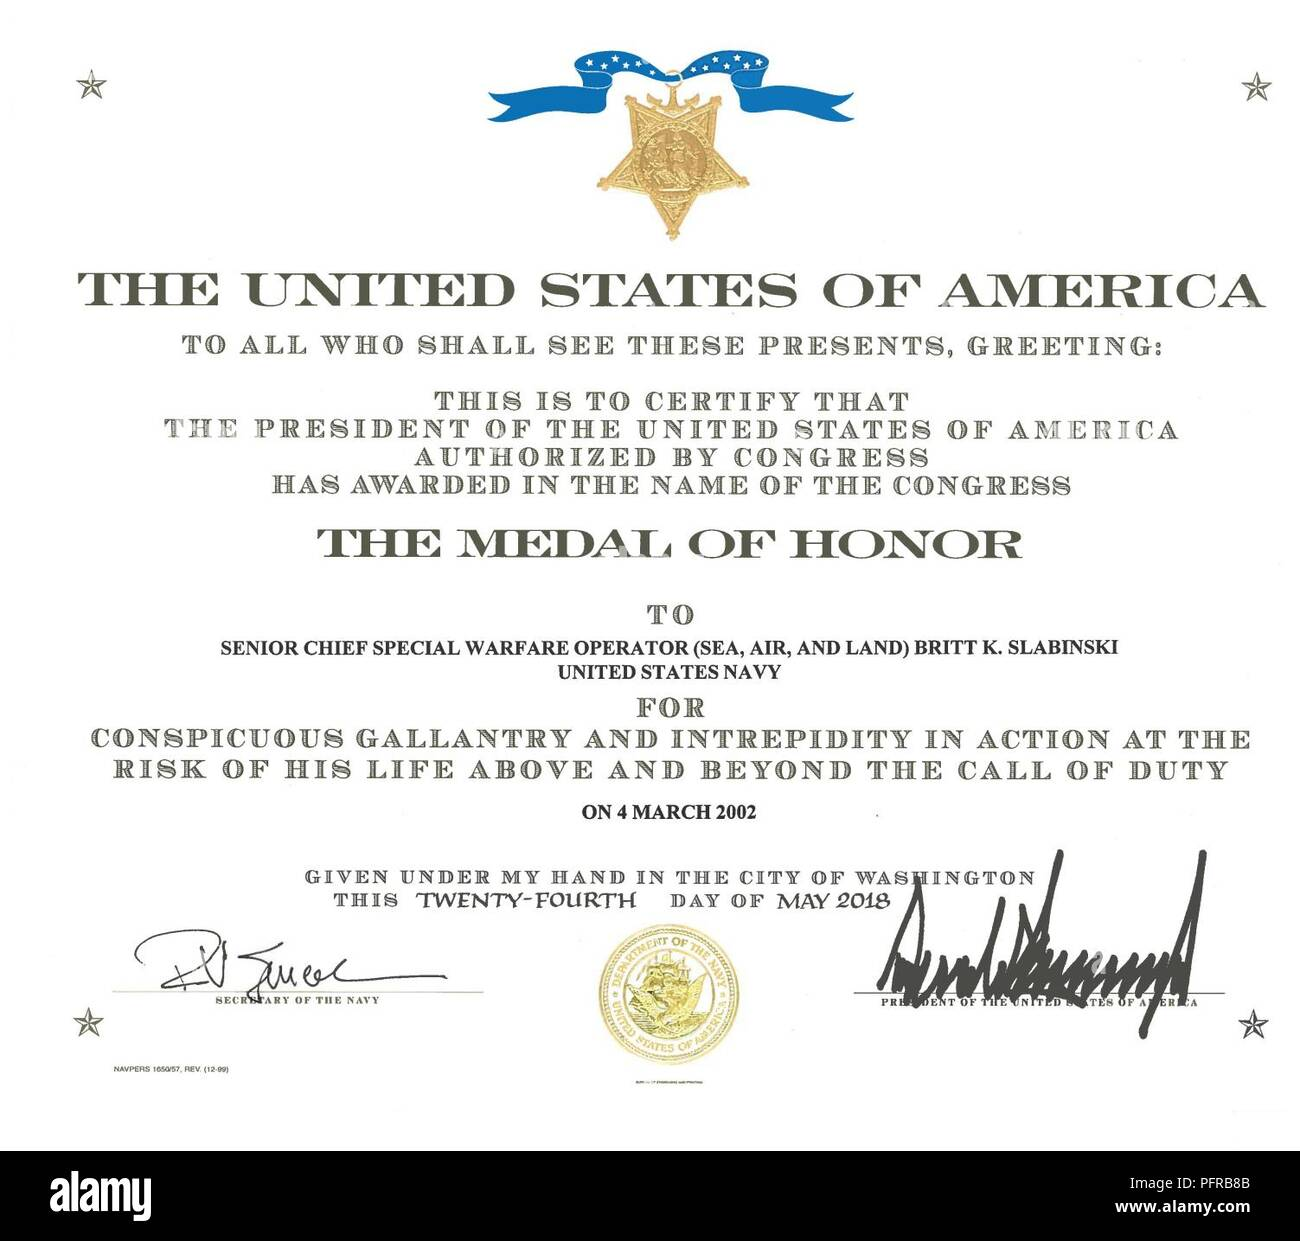 (May 25, 2018) The Medal of Honor certificate of retired Master Chief Special Warfare Operator (SEAL) Britt Slabinski. President Donald J. Trump presented the Medal of Honor to Slabinski during a ceremony at the White House in Washington, D.C. Slabinski received the Medal of Honor for his actions during Operation Anaconda in Afghanistan in March 2002. Stock Photo